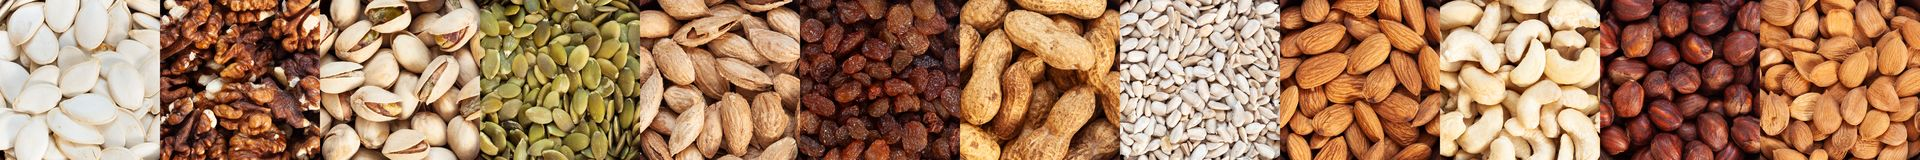 Nut collection. A collection of raisins, cashews, apricot seeds, walnuts, sunflower seeds, hazelnuts, pumpkin seeds, peanuts and almonds in square shape, top royalty free stock photos